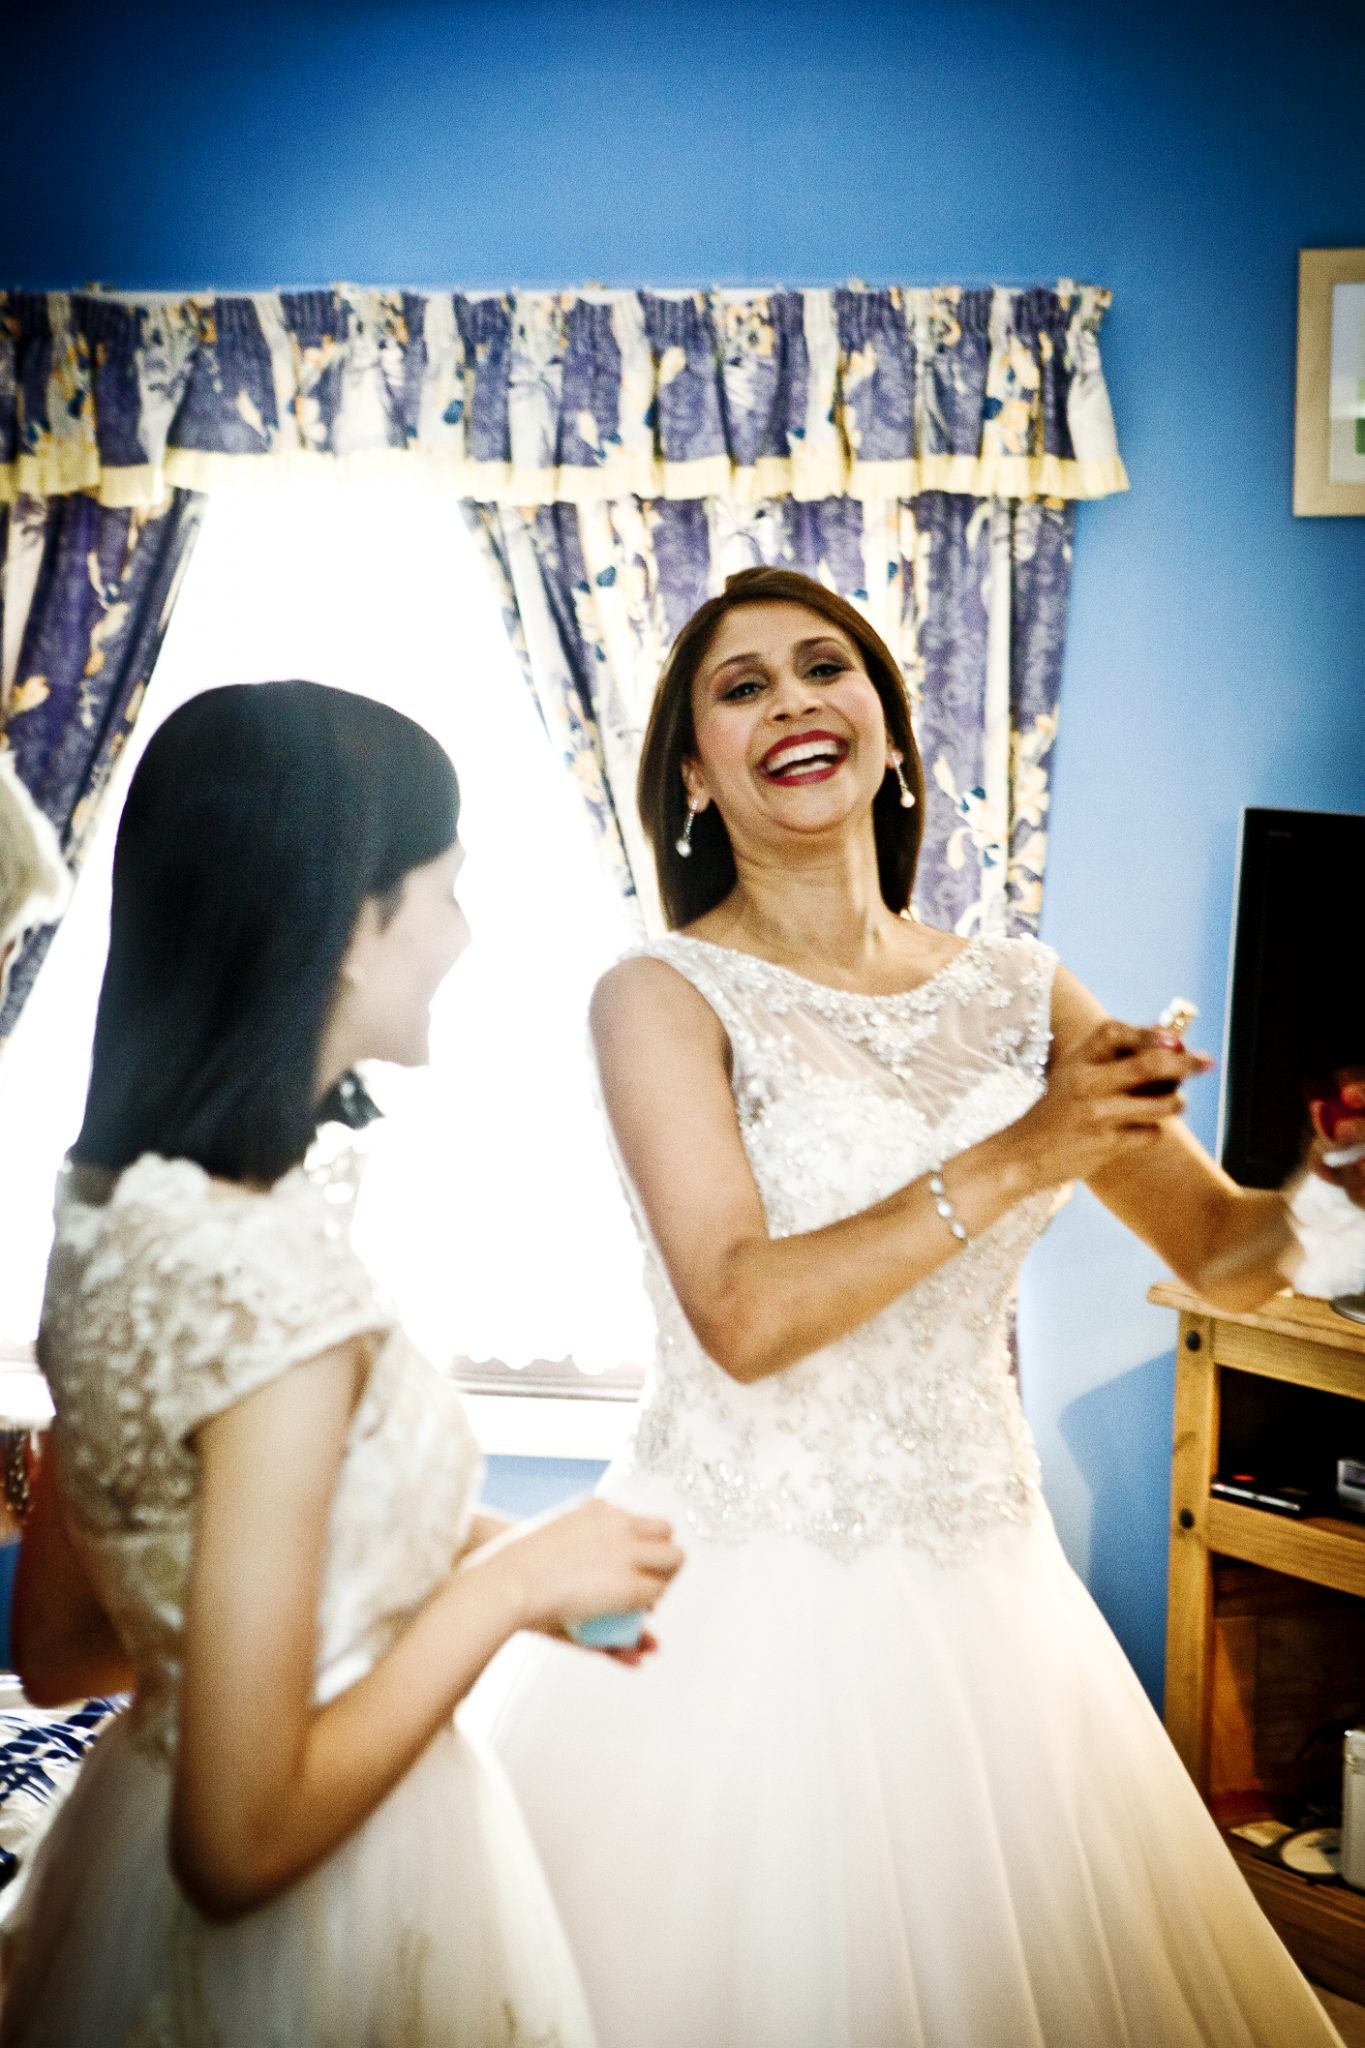 wedding-photography-of-the-bride-getting-ready-in-congleton-cheshire